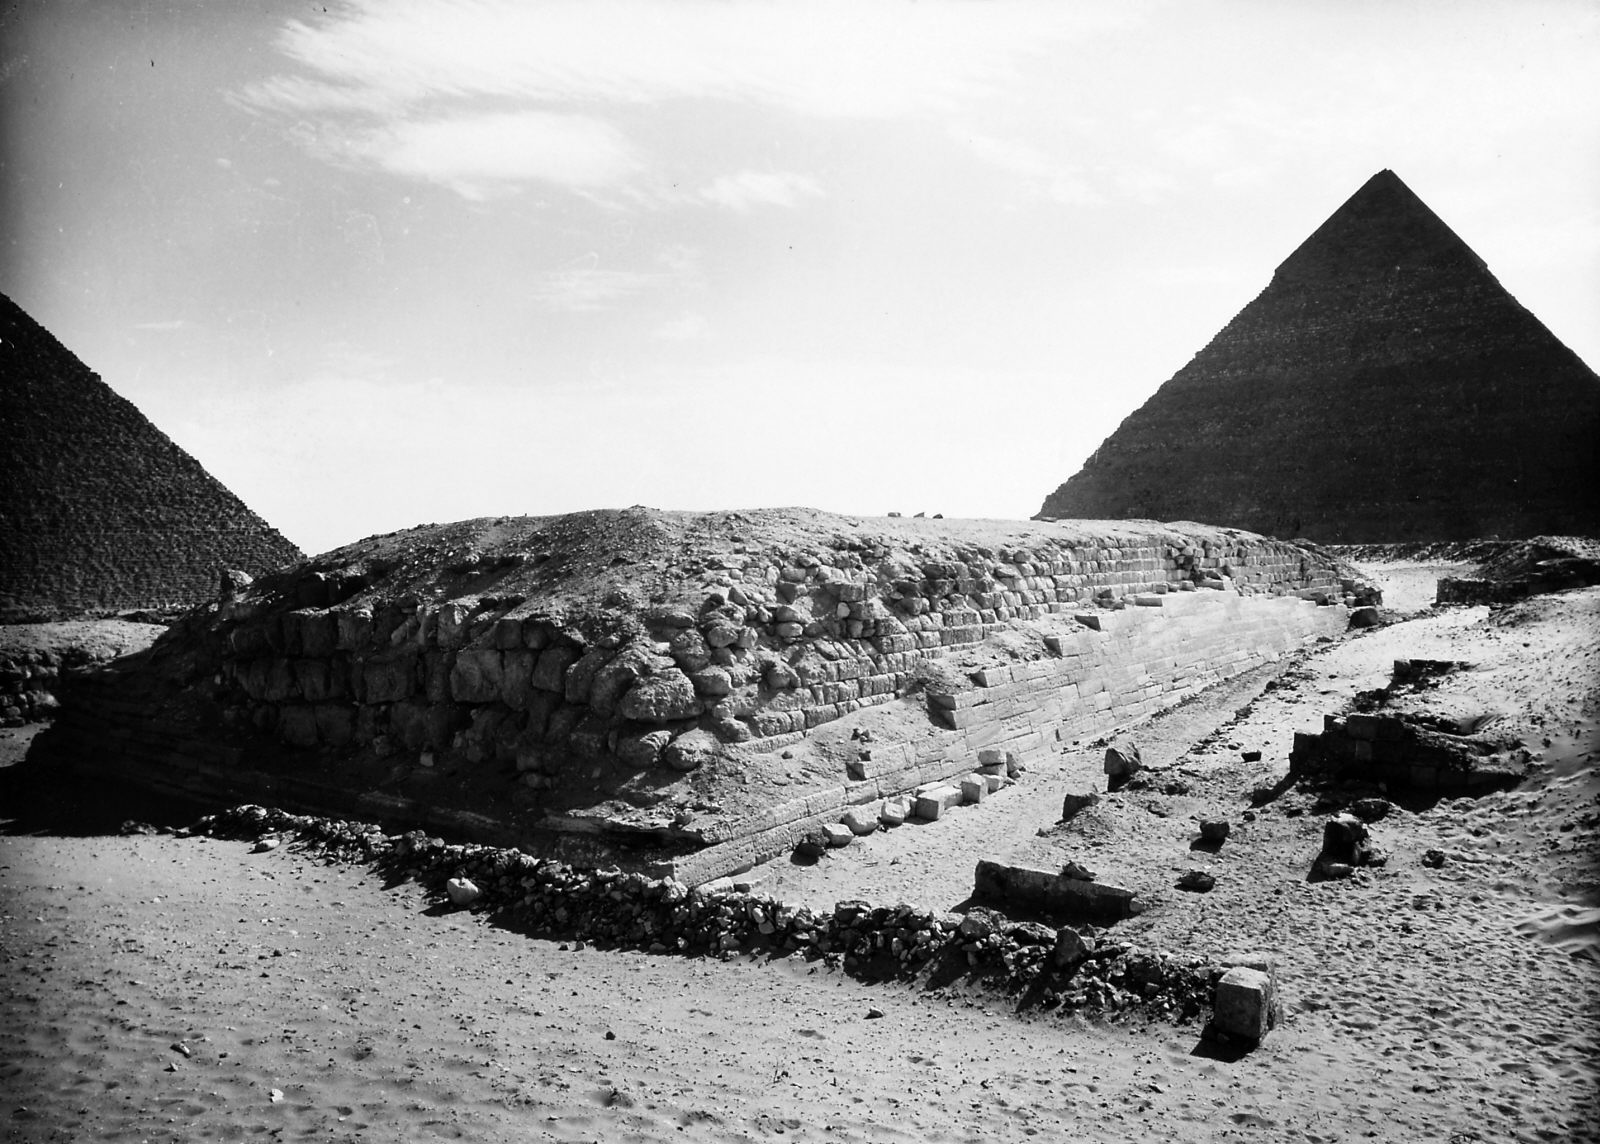 Although Hemieunu's great mastaba (G 4000) dominates the photo (looking south-southeast), the northern end of Nisutnefer's D 59 can be seen in the foreground, right. Photo ID KHM_AEOS_II_5058, photo and description courtesy of the Giza Archives maintained by Harvard University and the Museum of Fine Arts Boston, online at Digital Giza.